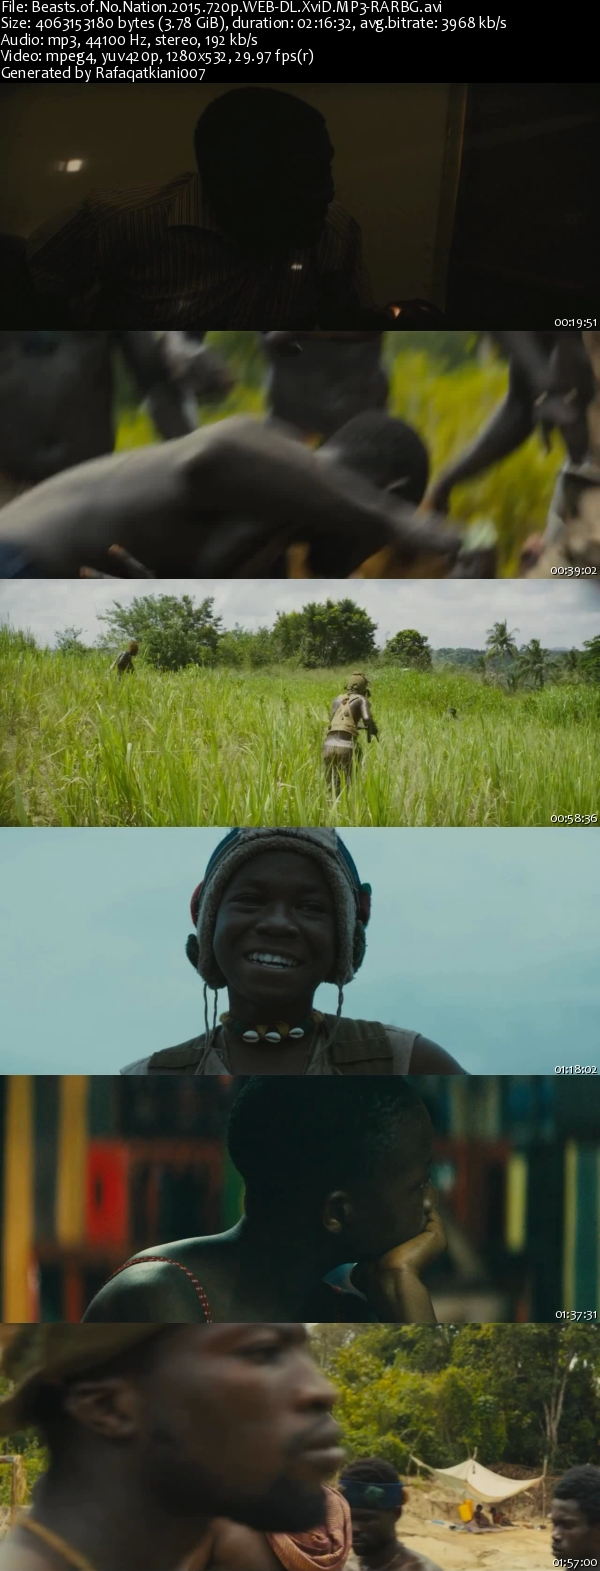 Beasts of No Nation (2015) 720p WEBRip XviD MP3-RARBG